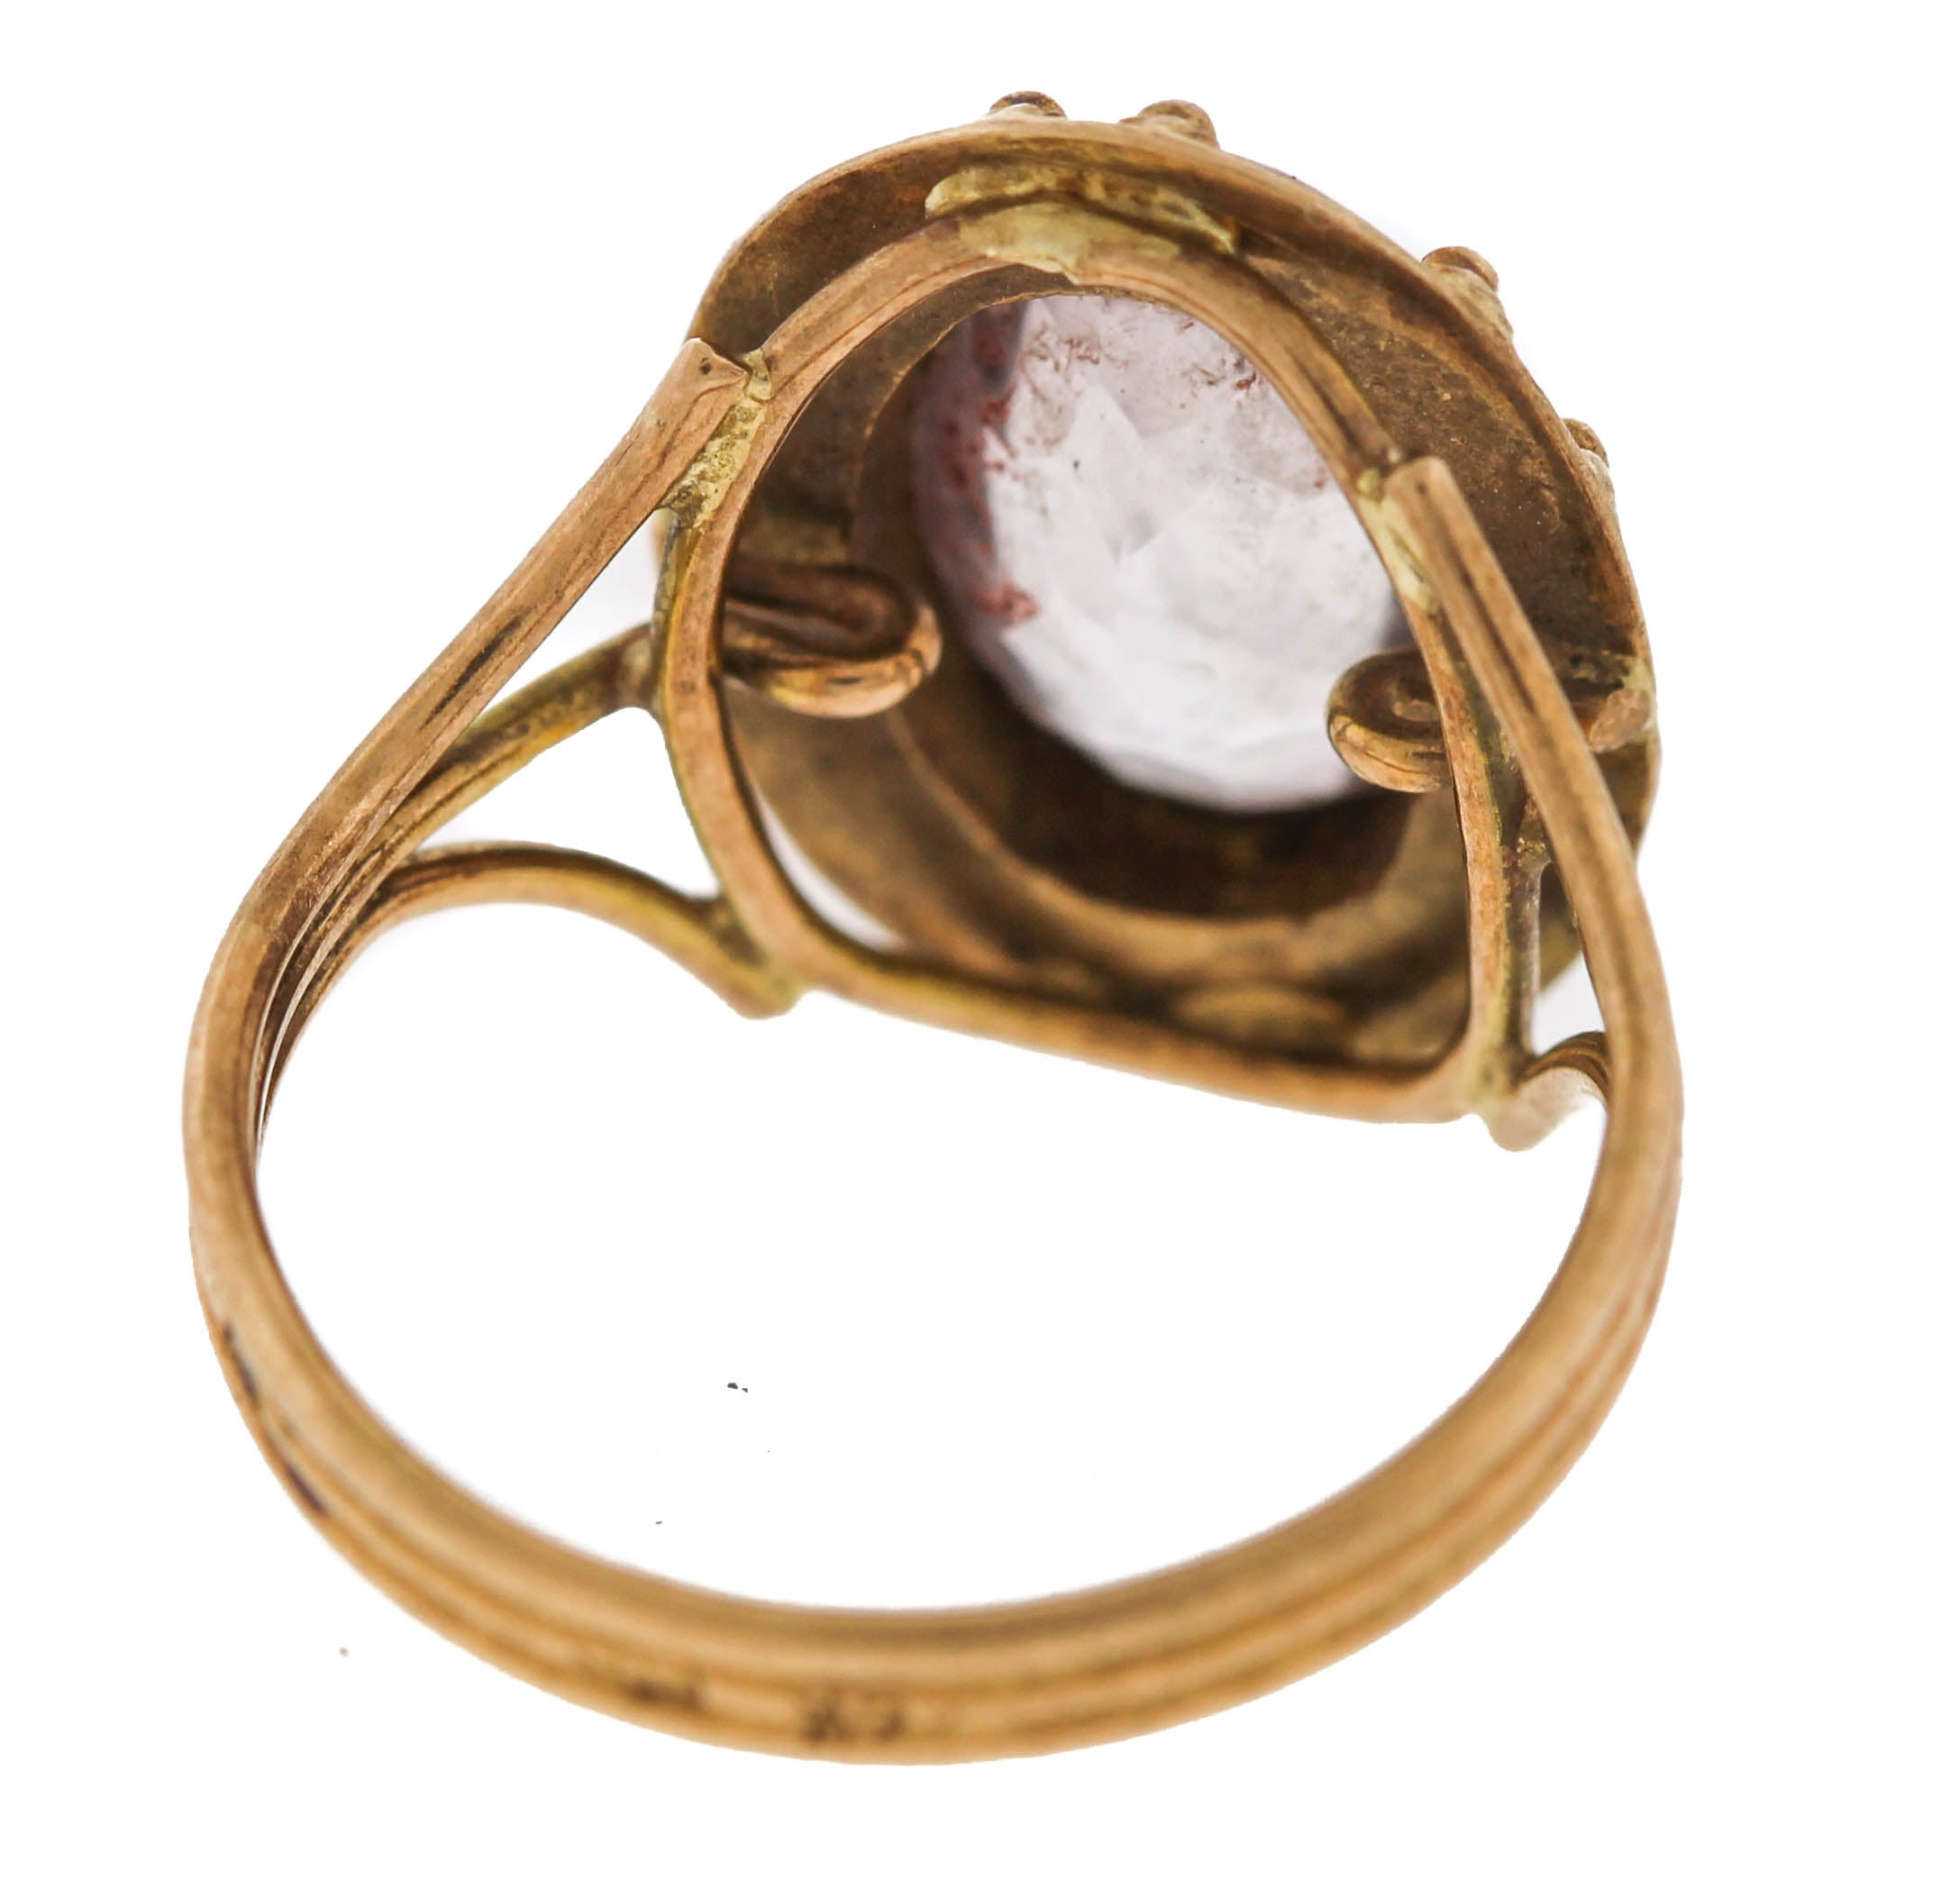 Ladies Vintage Estate 14K Yellow Gold Quartz Cabochon Cocktail Ring